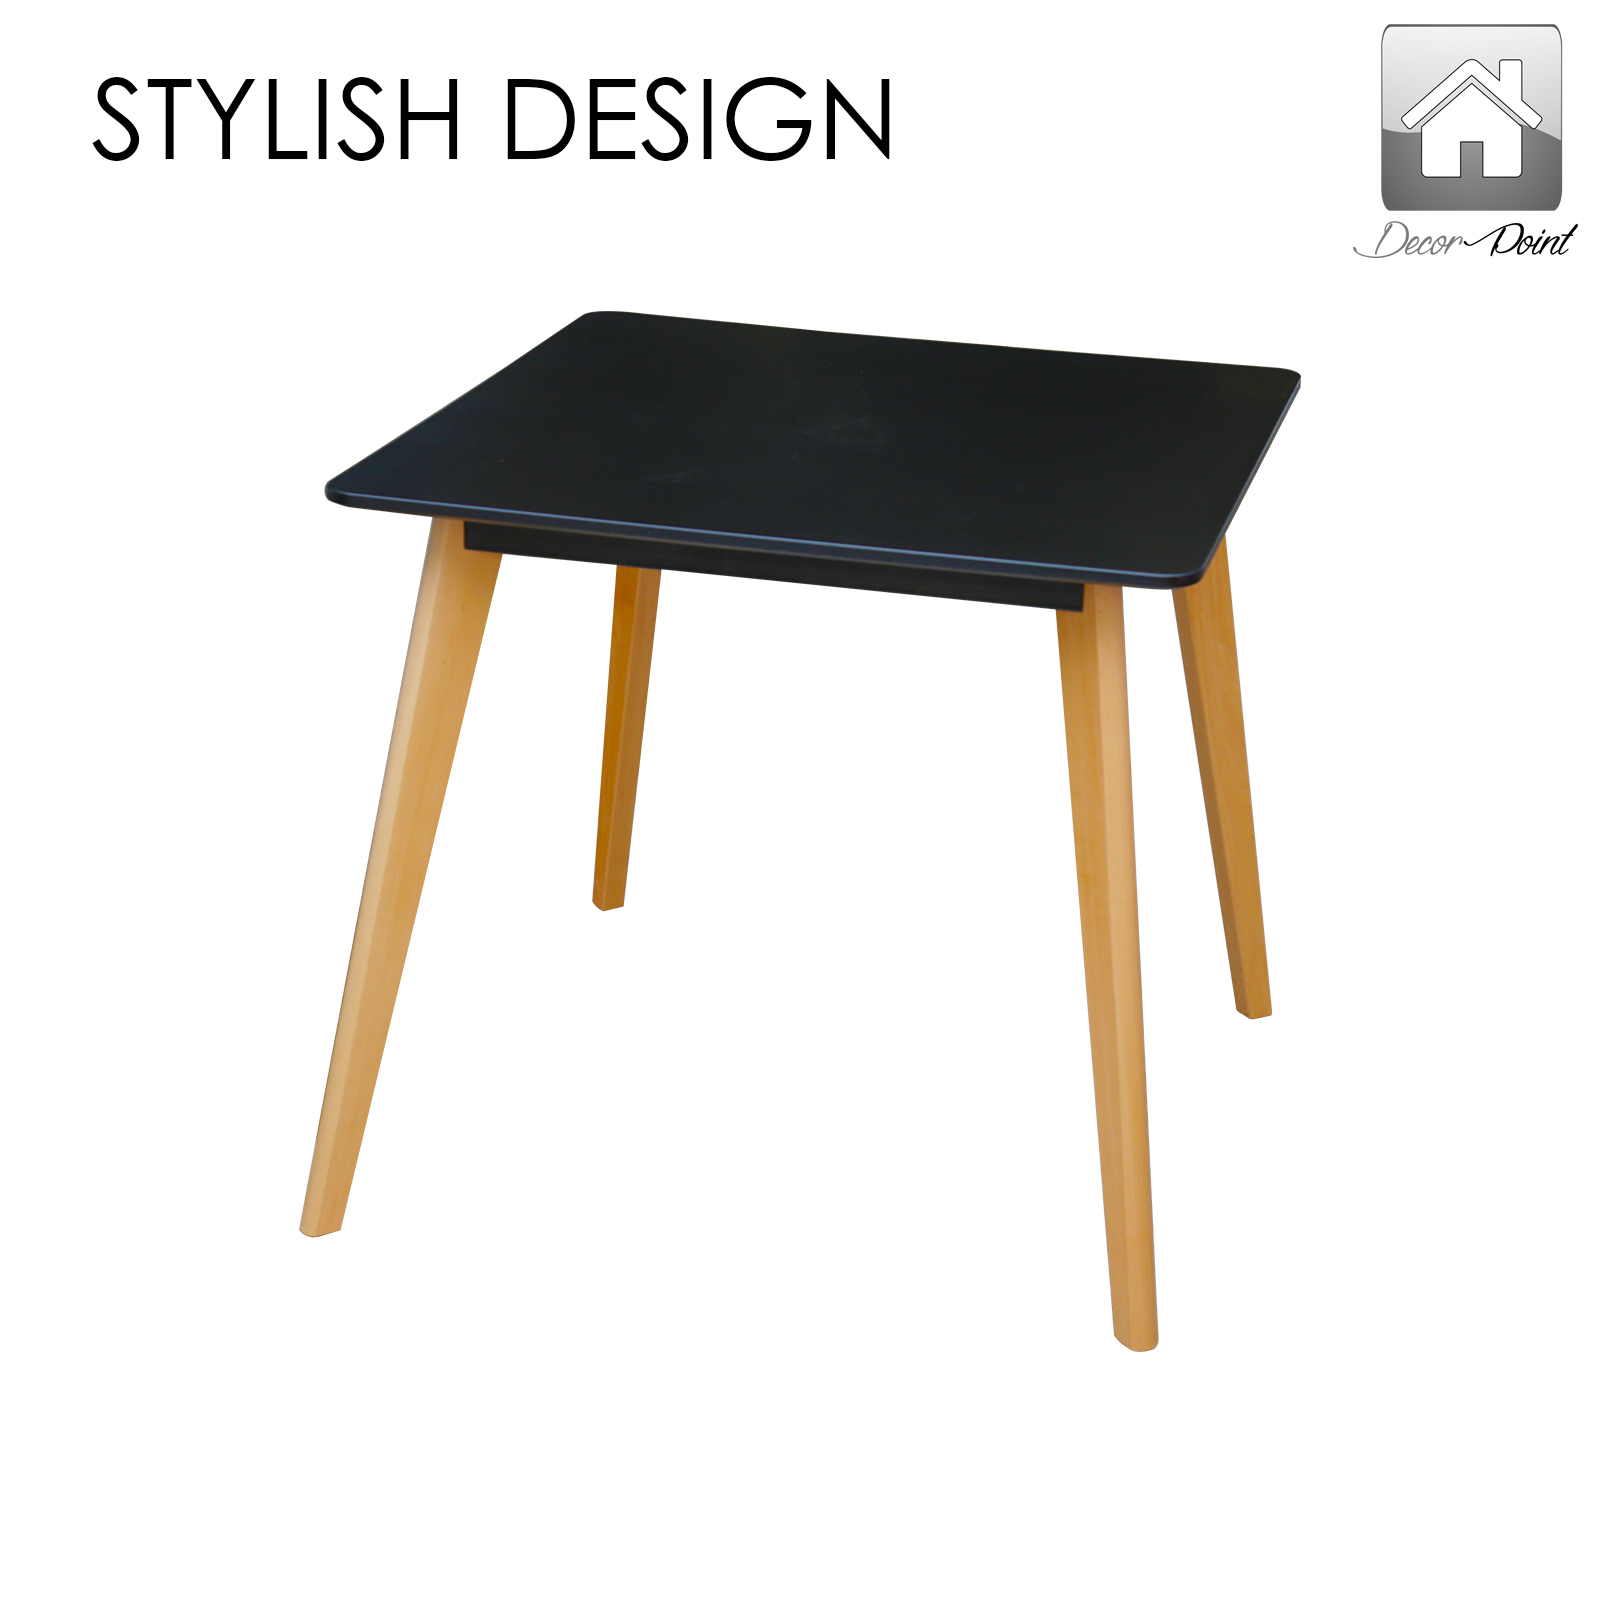 City small dining table 4 x replica eames sisly abs plastic cafe dining chair ebay - Replica eames dining table ...